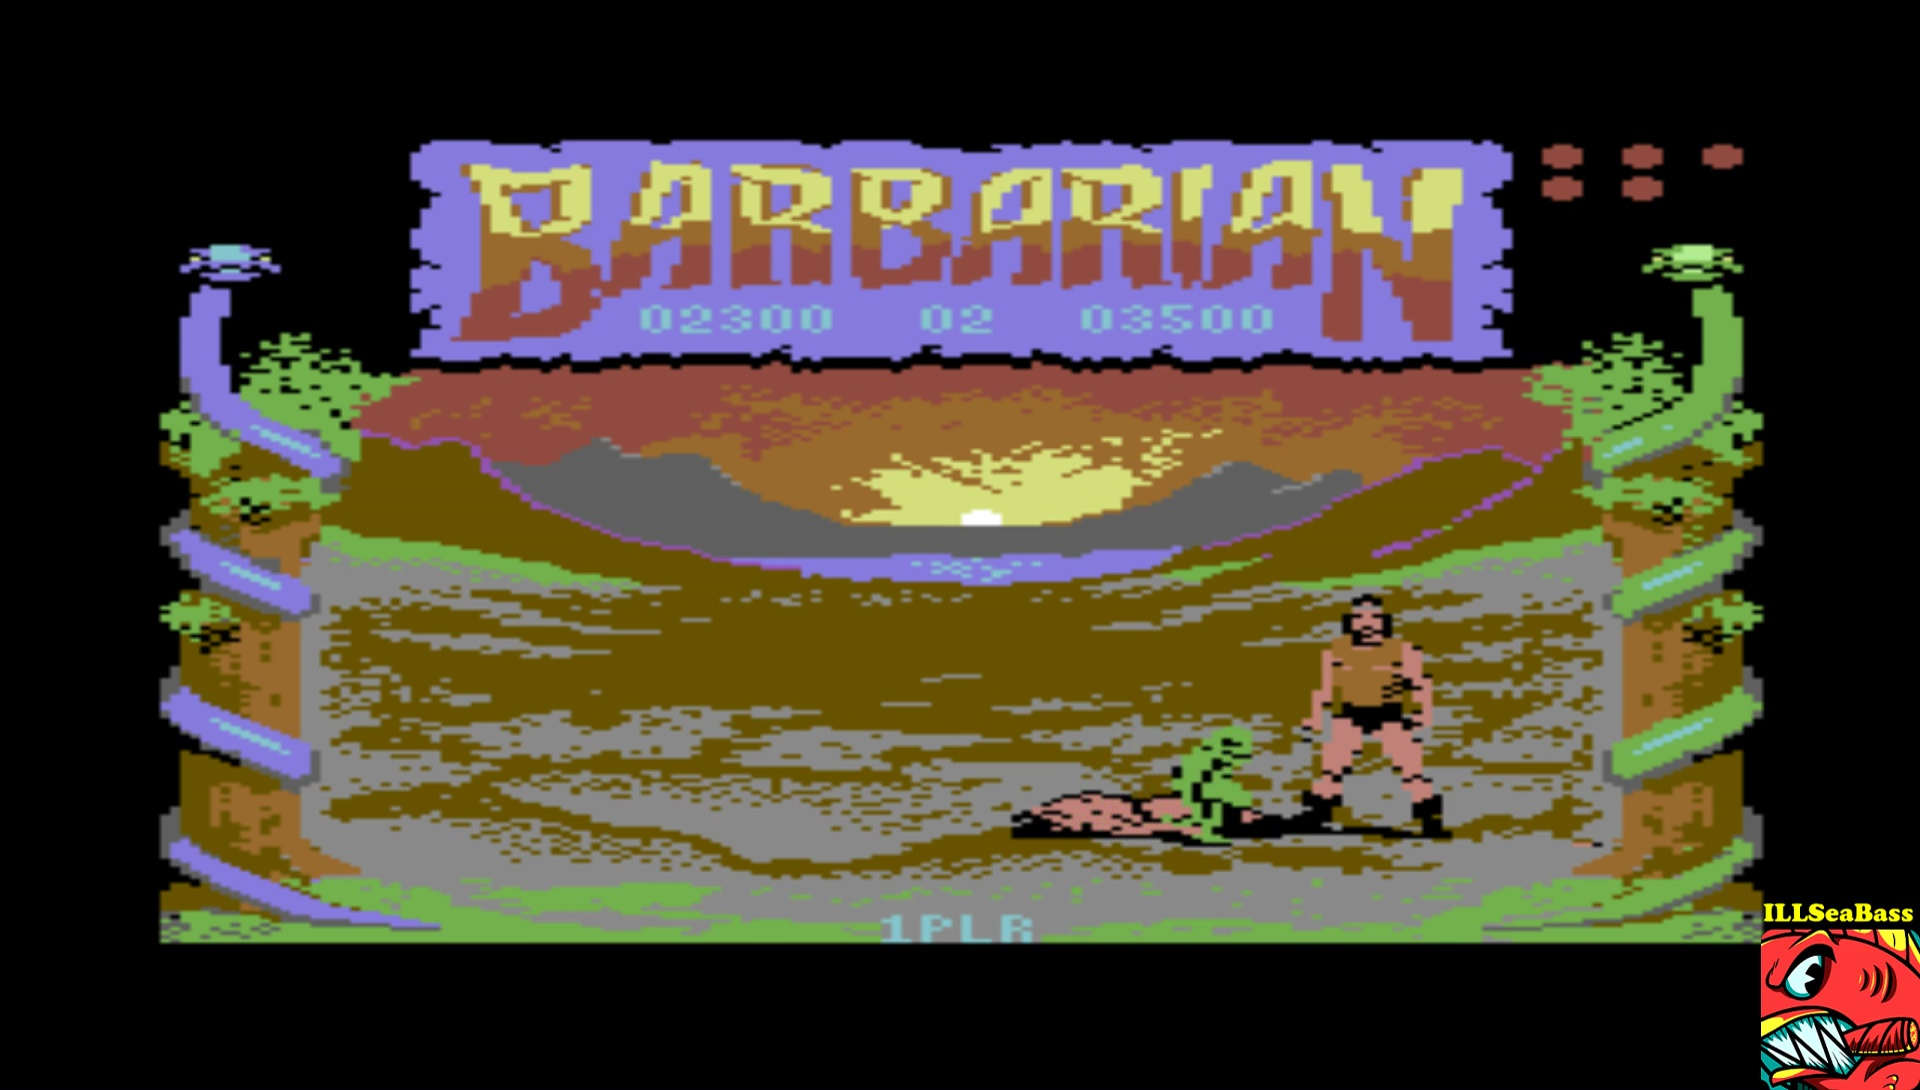 ILLSeaBass: Barbarian: The Ultimate Warrior (Commodore 64 Emulated) 2,300 points on 2017-03-17 21:37:31